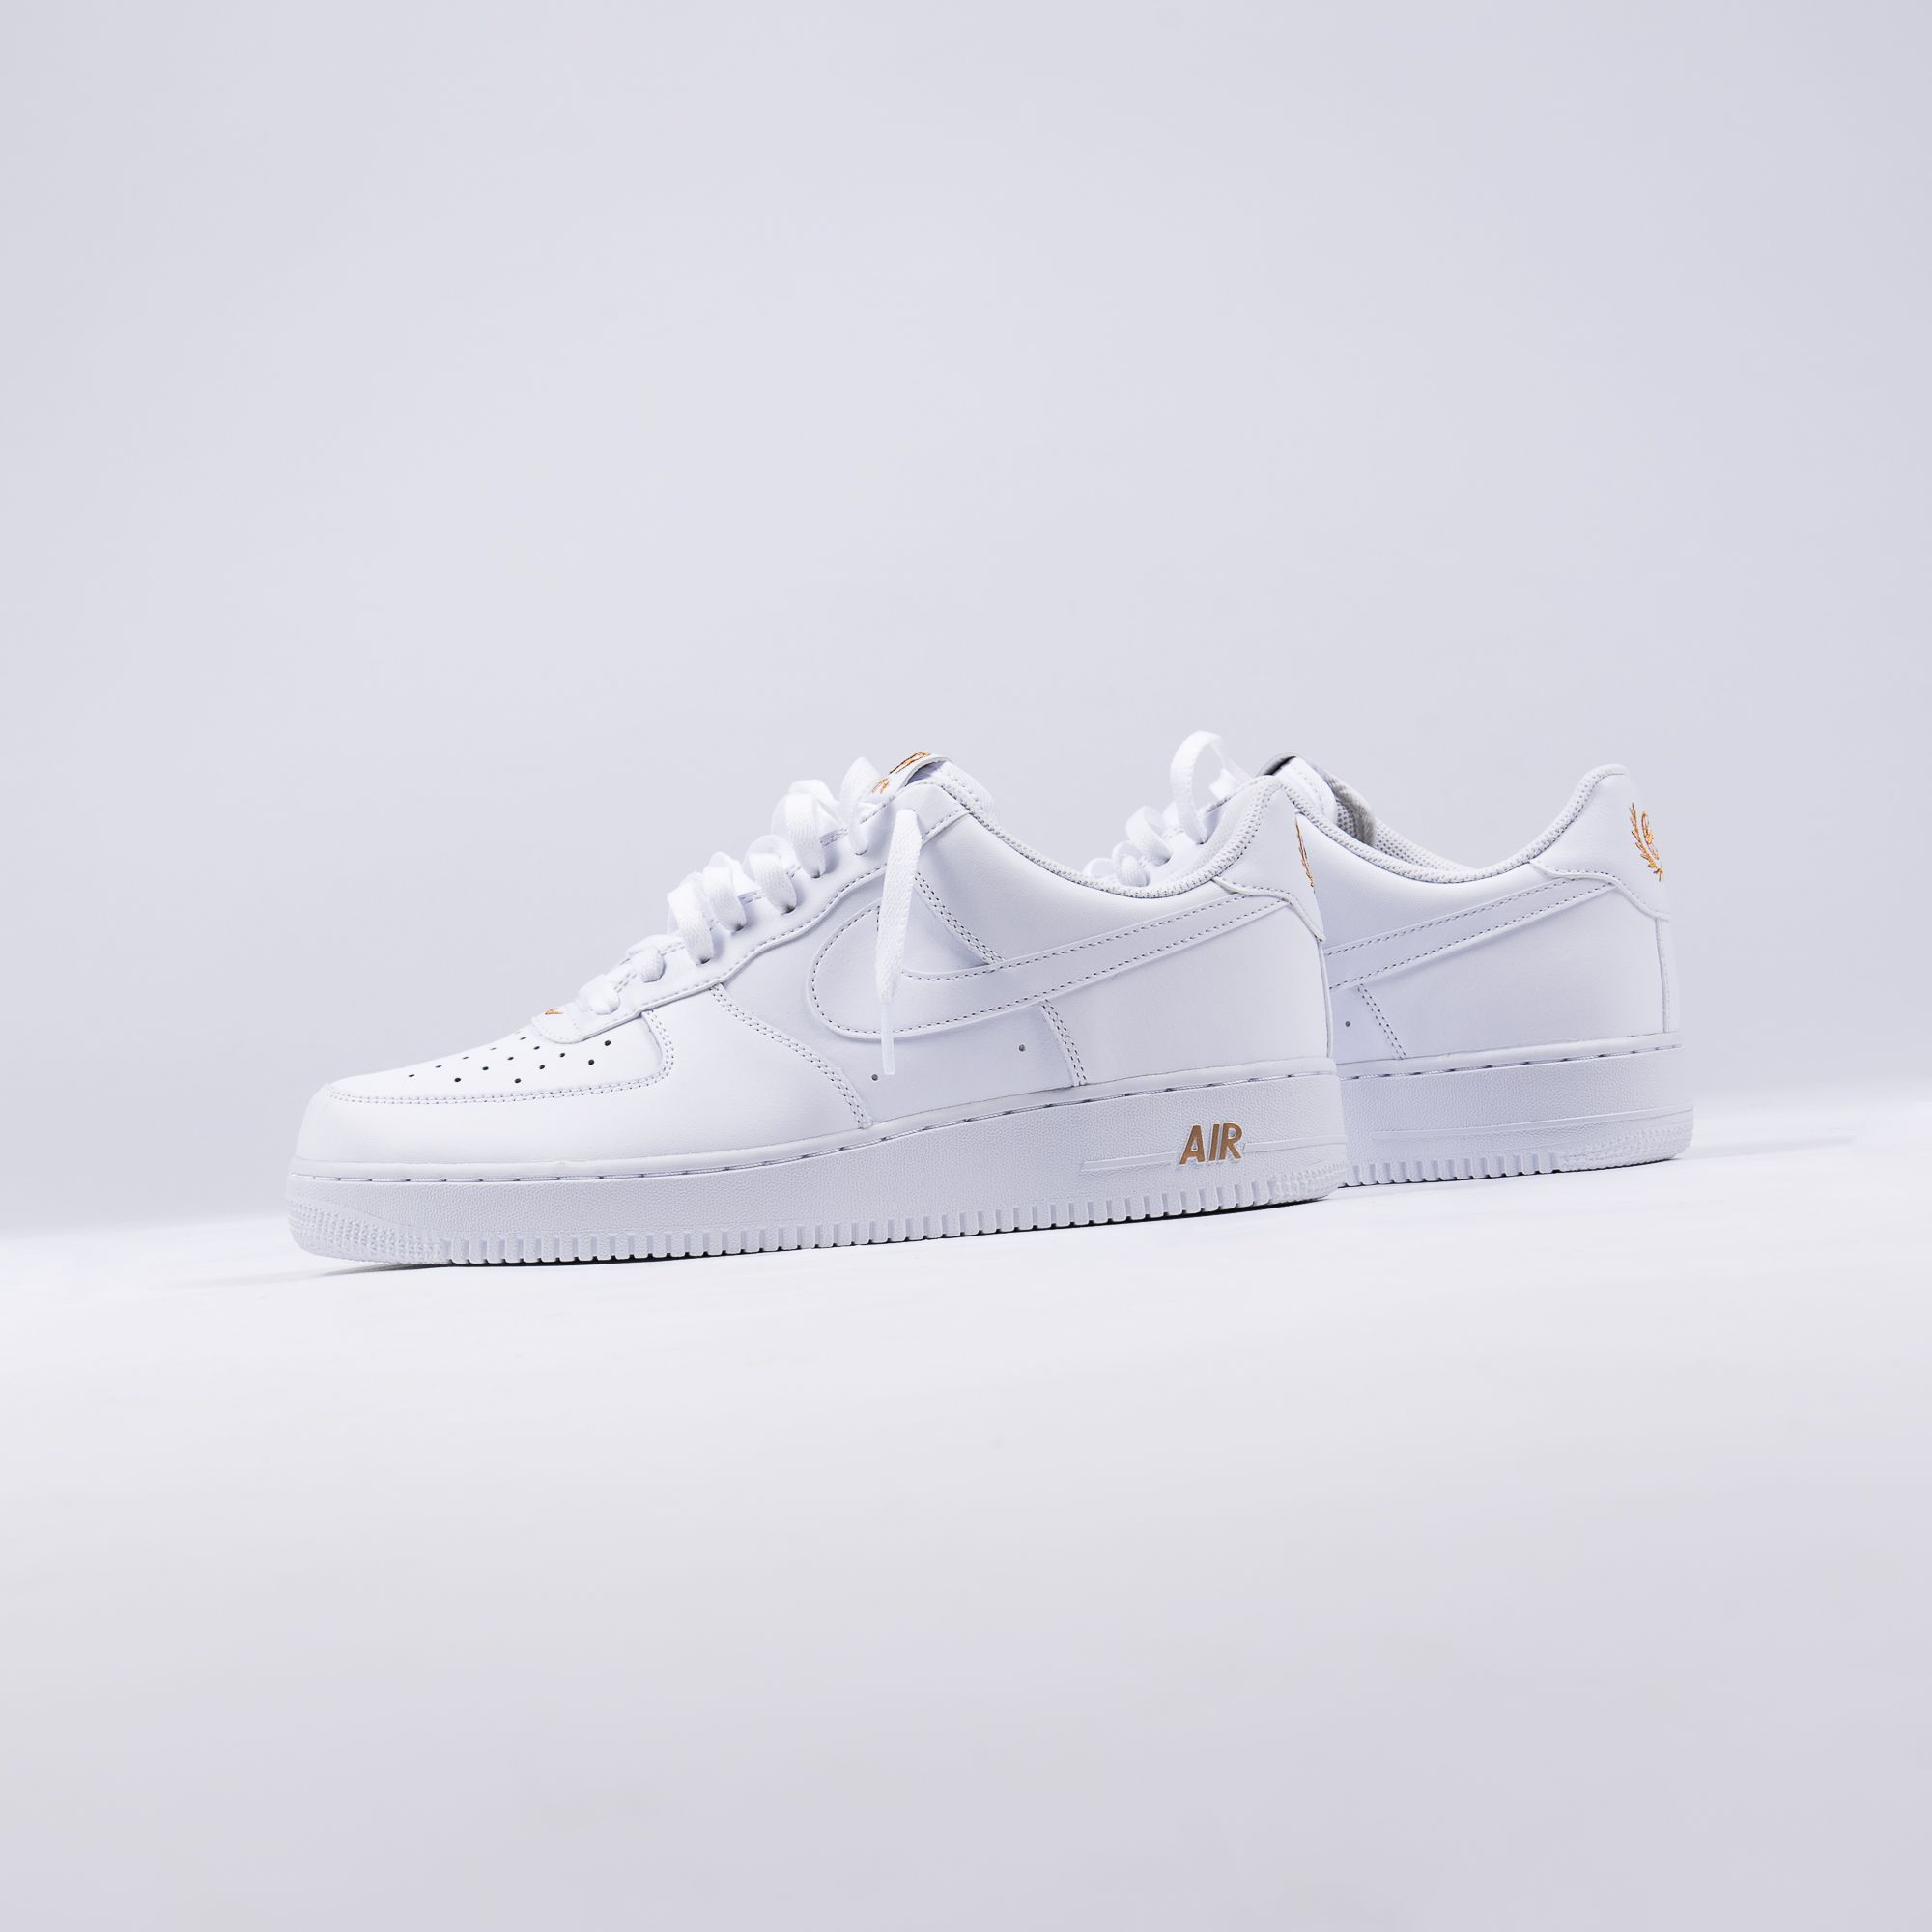 46a53d3a3 Nike s iconic Air Force 1 Low is adding a new Lea Crest logo to its heel.  It s made up of a golden basketball and a swoosh that rest inside the leaf.